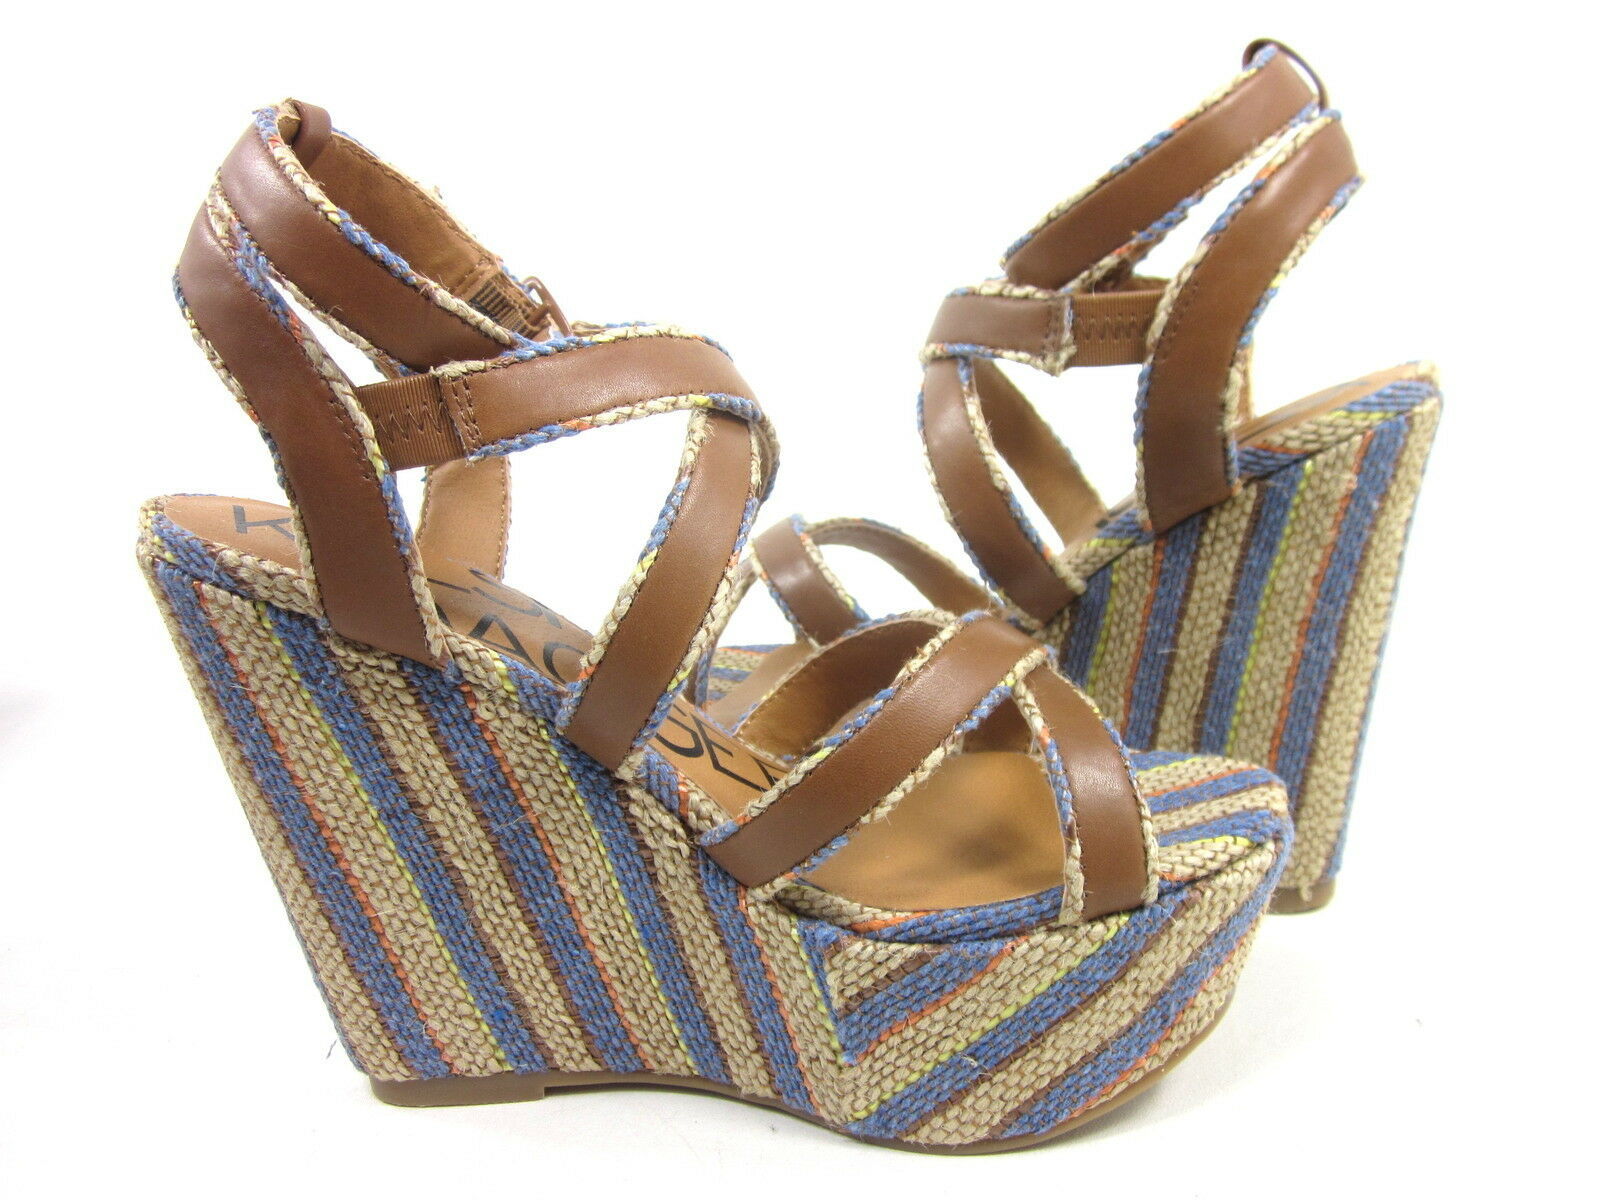 KELSI DAGGER, PAXTON WEDGE SANDAL, COBALT, Damenschuhe, US 8 IN M, EURO 38, NEW IN 8 BOX abcec0